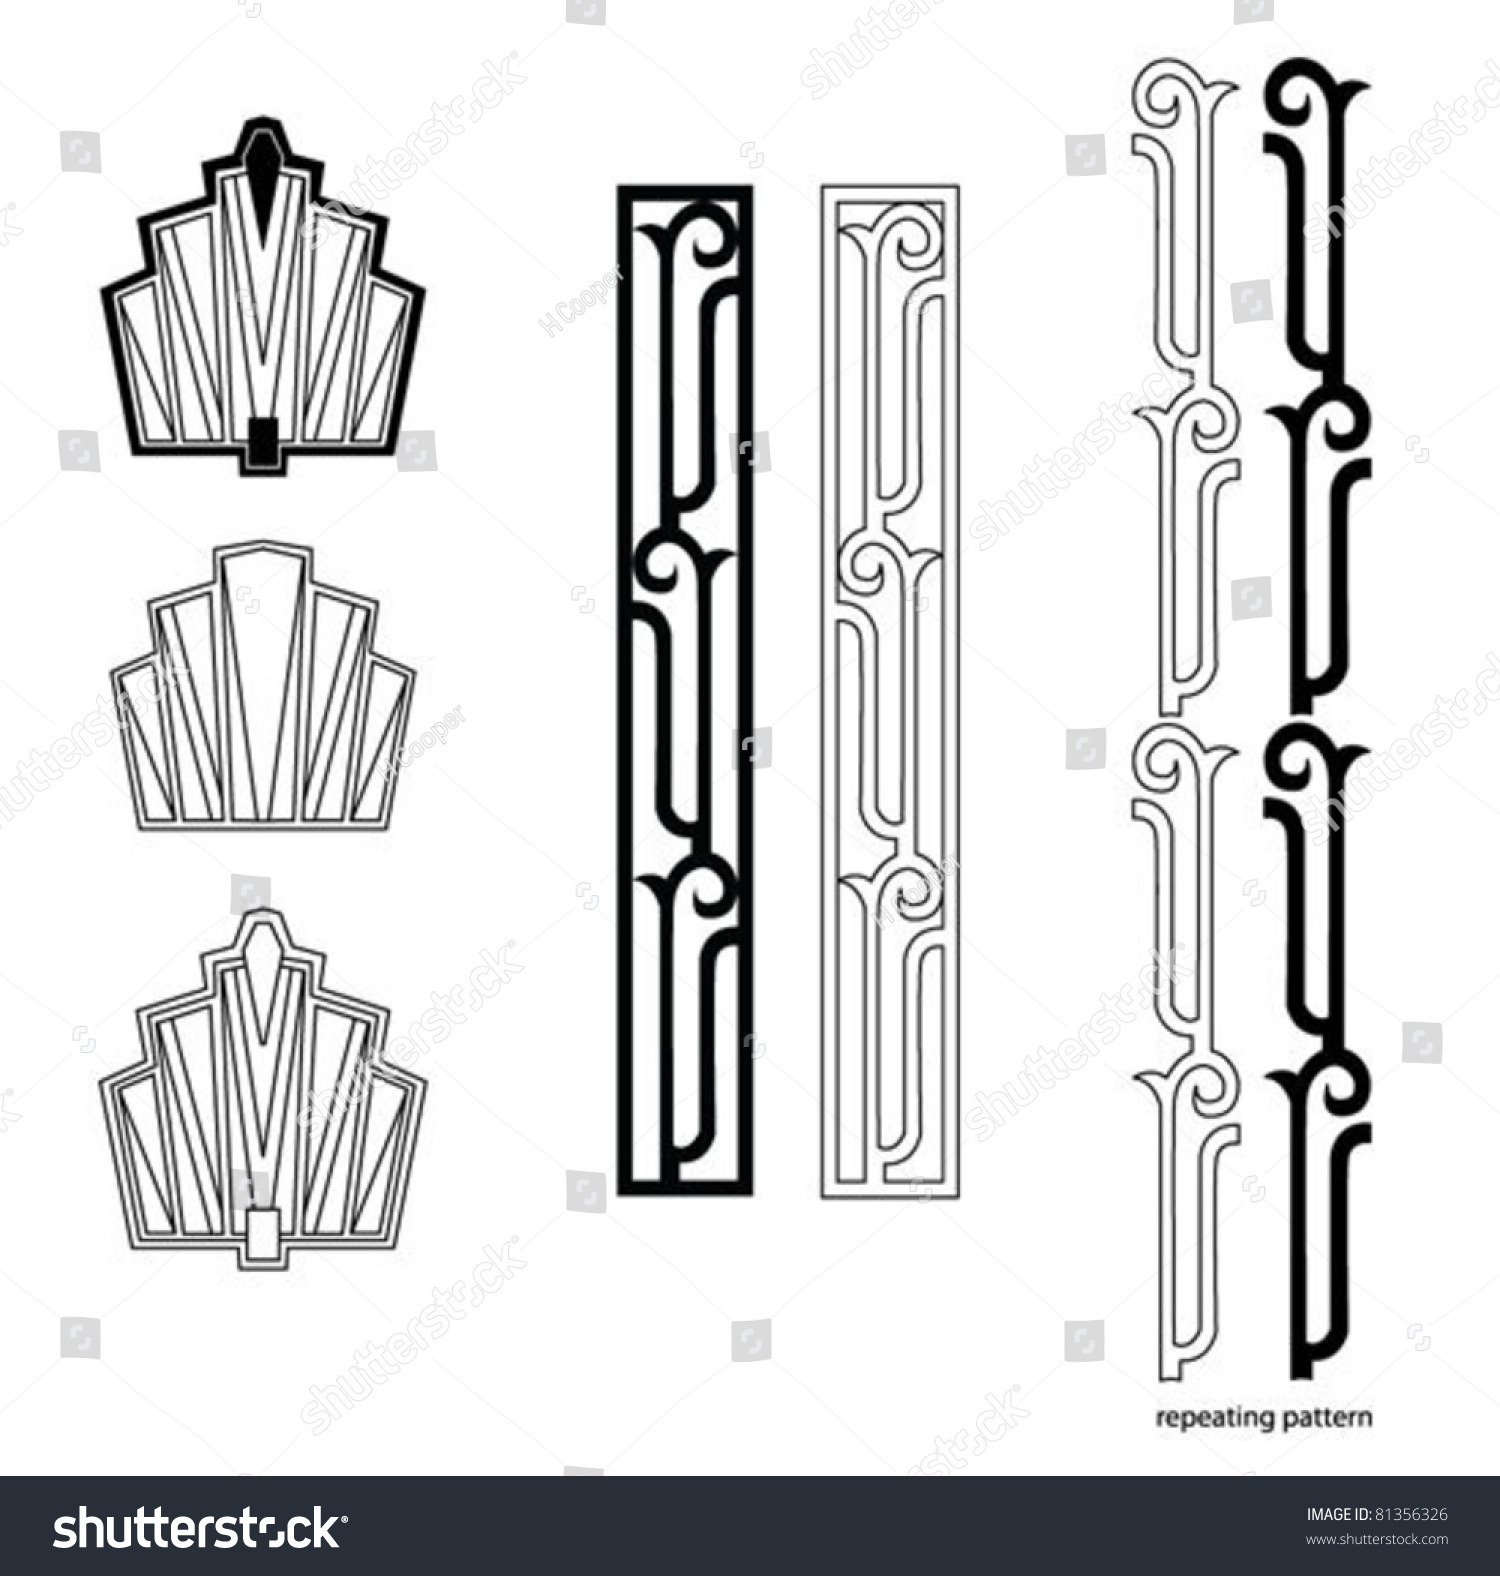 Art deco design elements stock vector 81356326 shutterstock - Art deco design elements ...